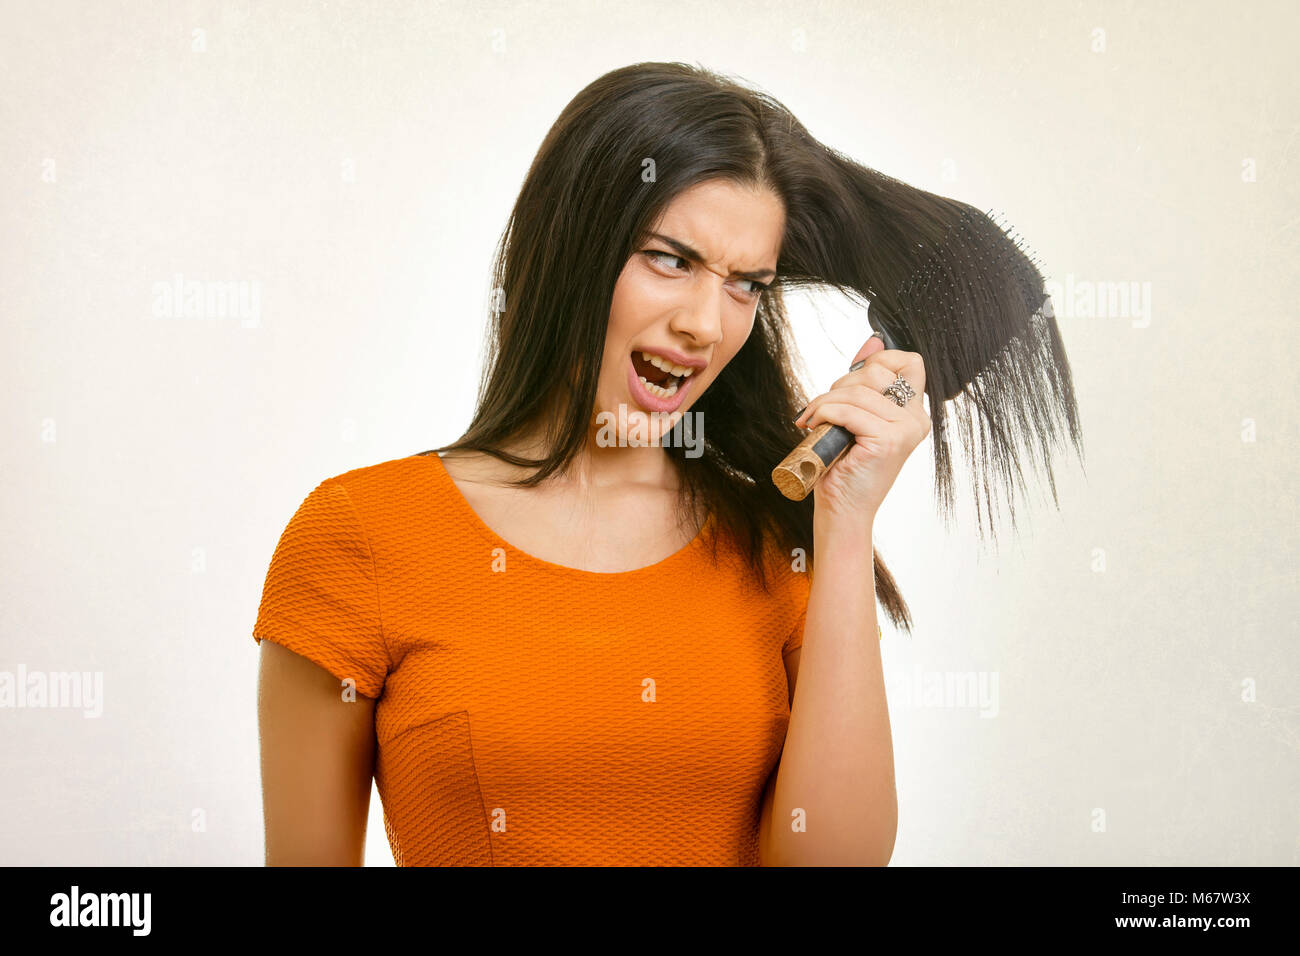 Woman with tangled hair stuck in comb - Stock Image